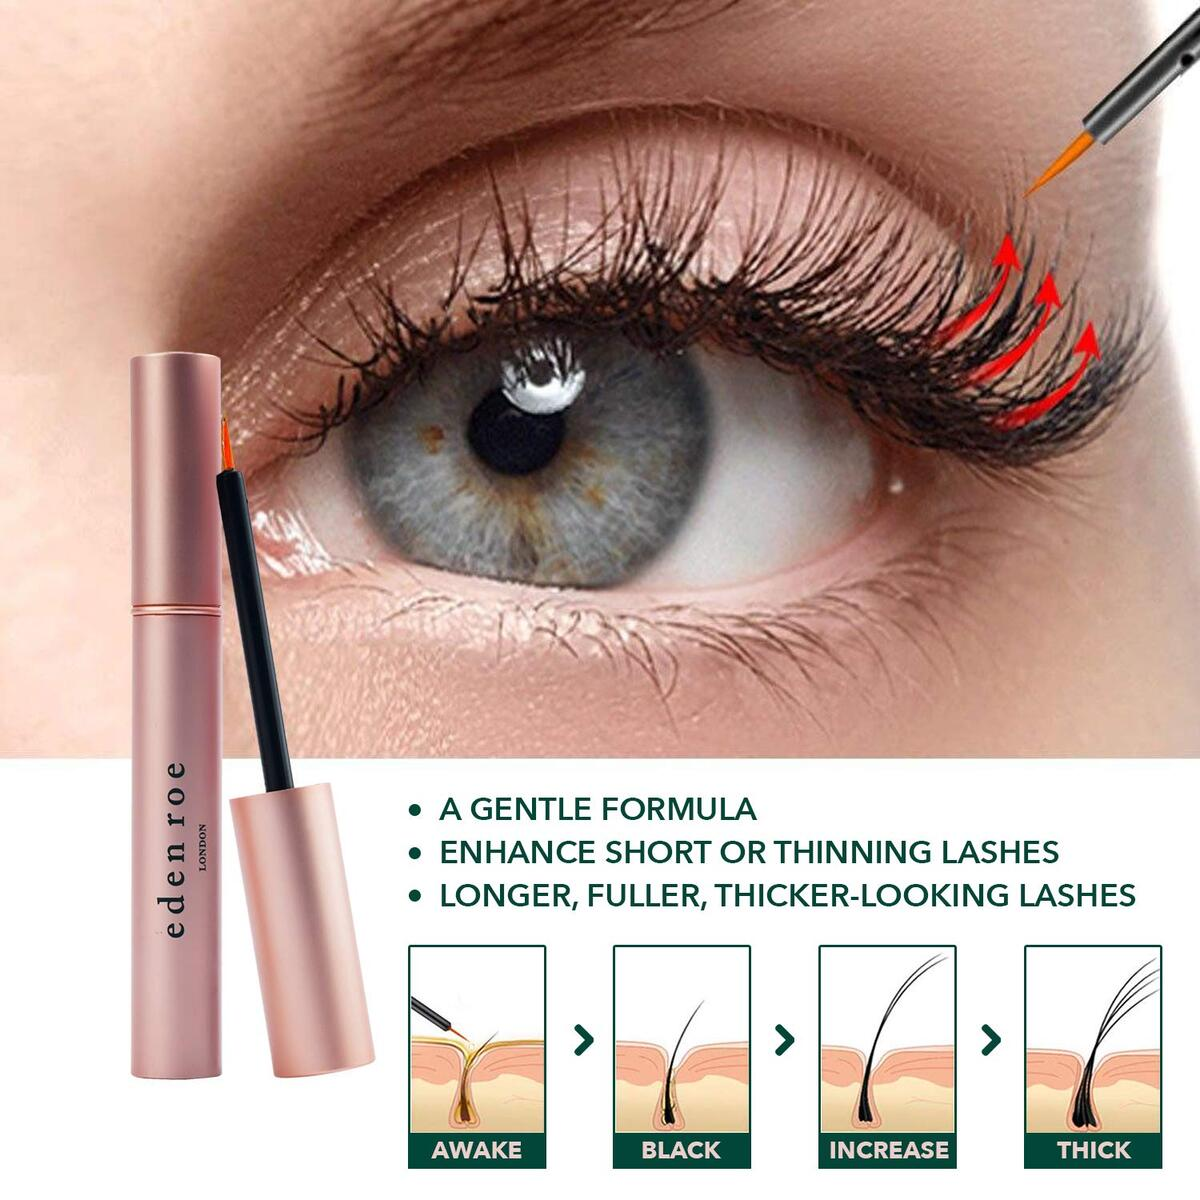 Eden Roe Eyelash & Eyebrow Growth Enhancing Serum to Grow Longer, Thicker Lashes and Brows 3.5ml